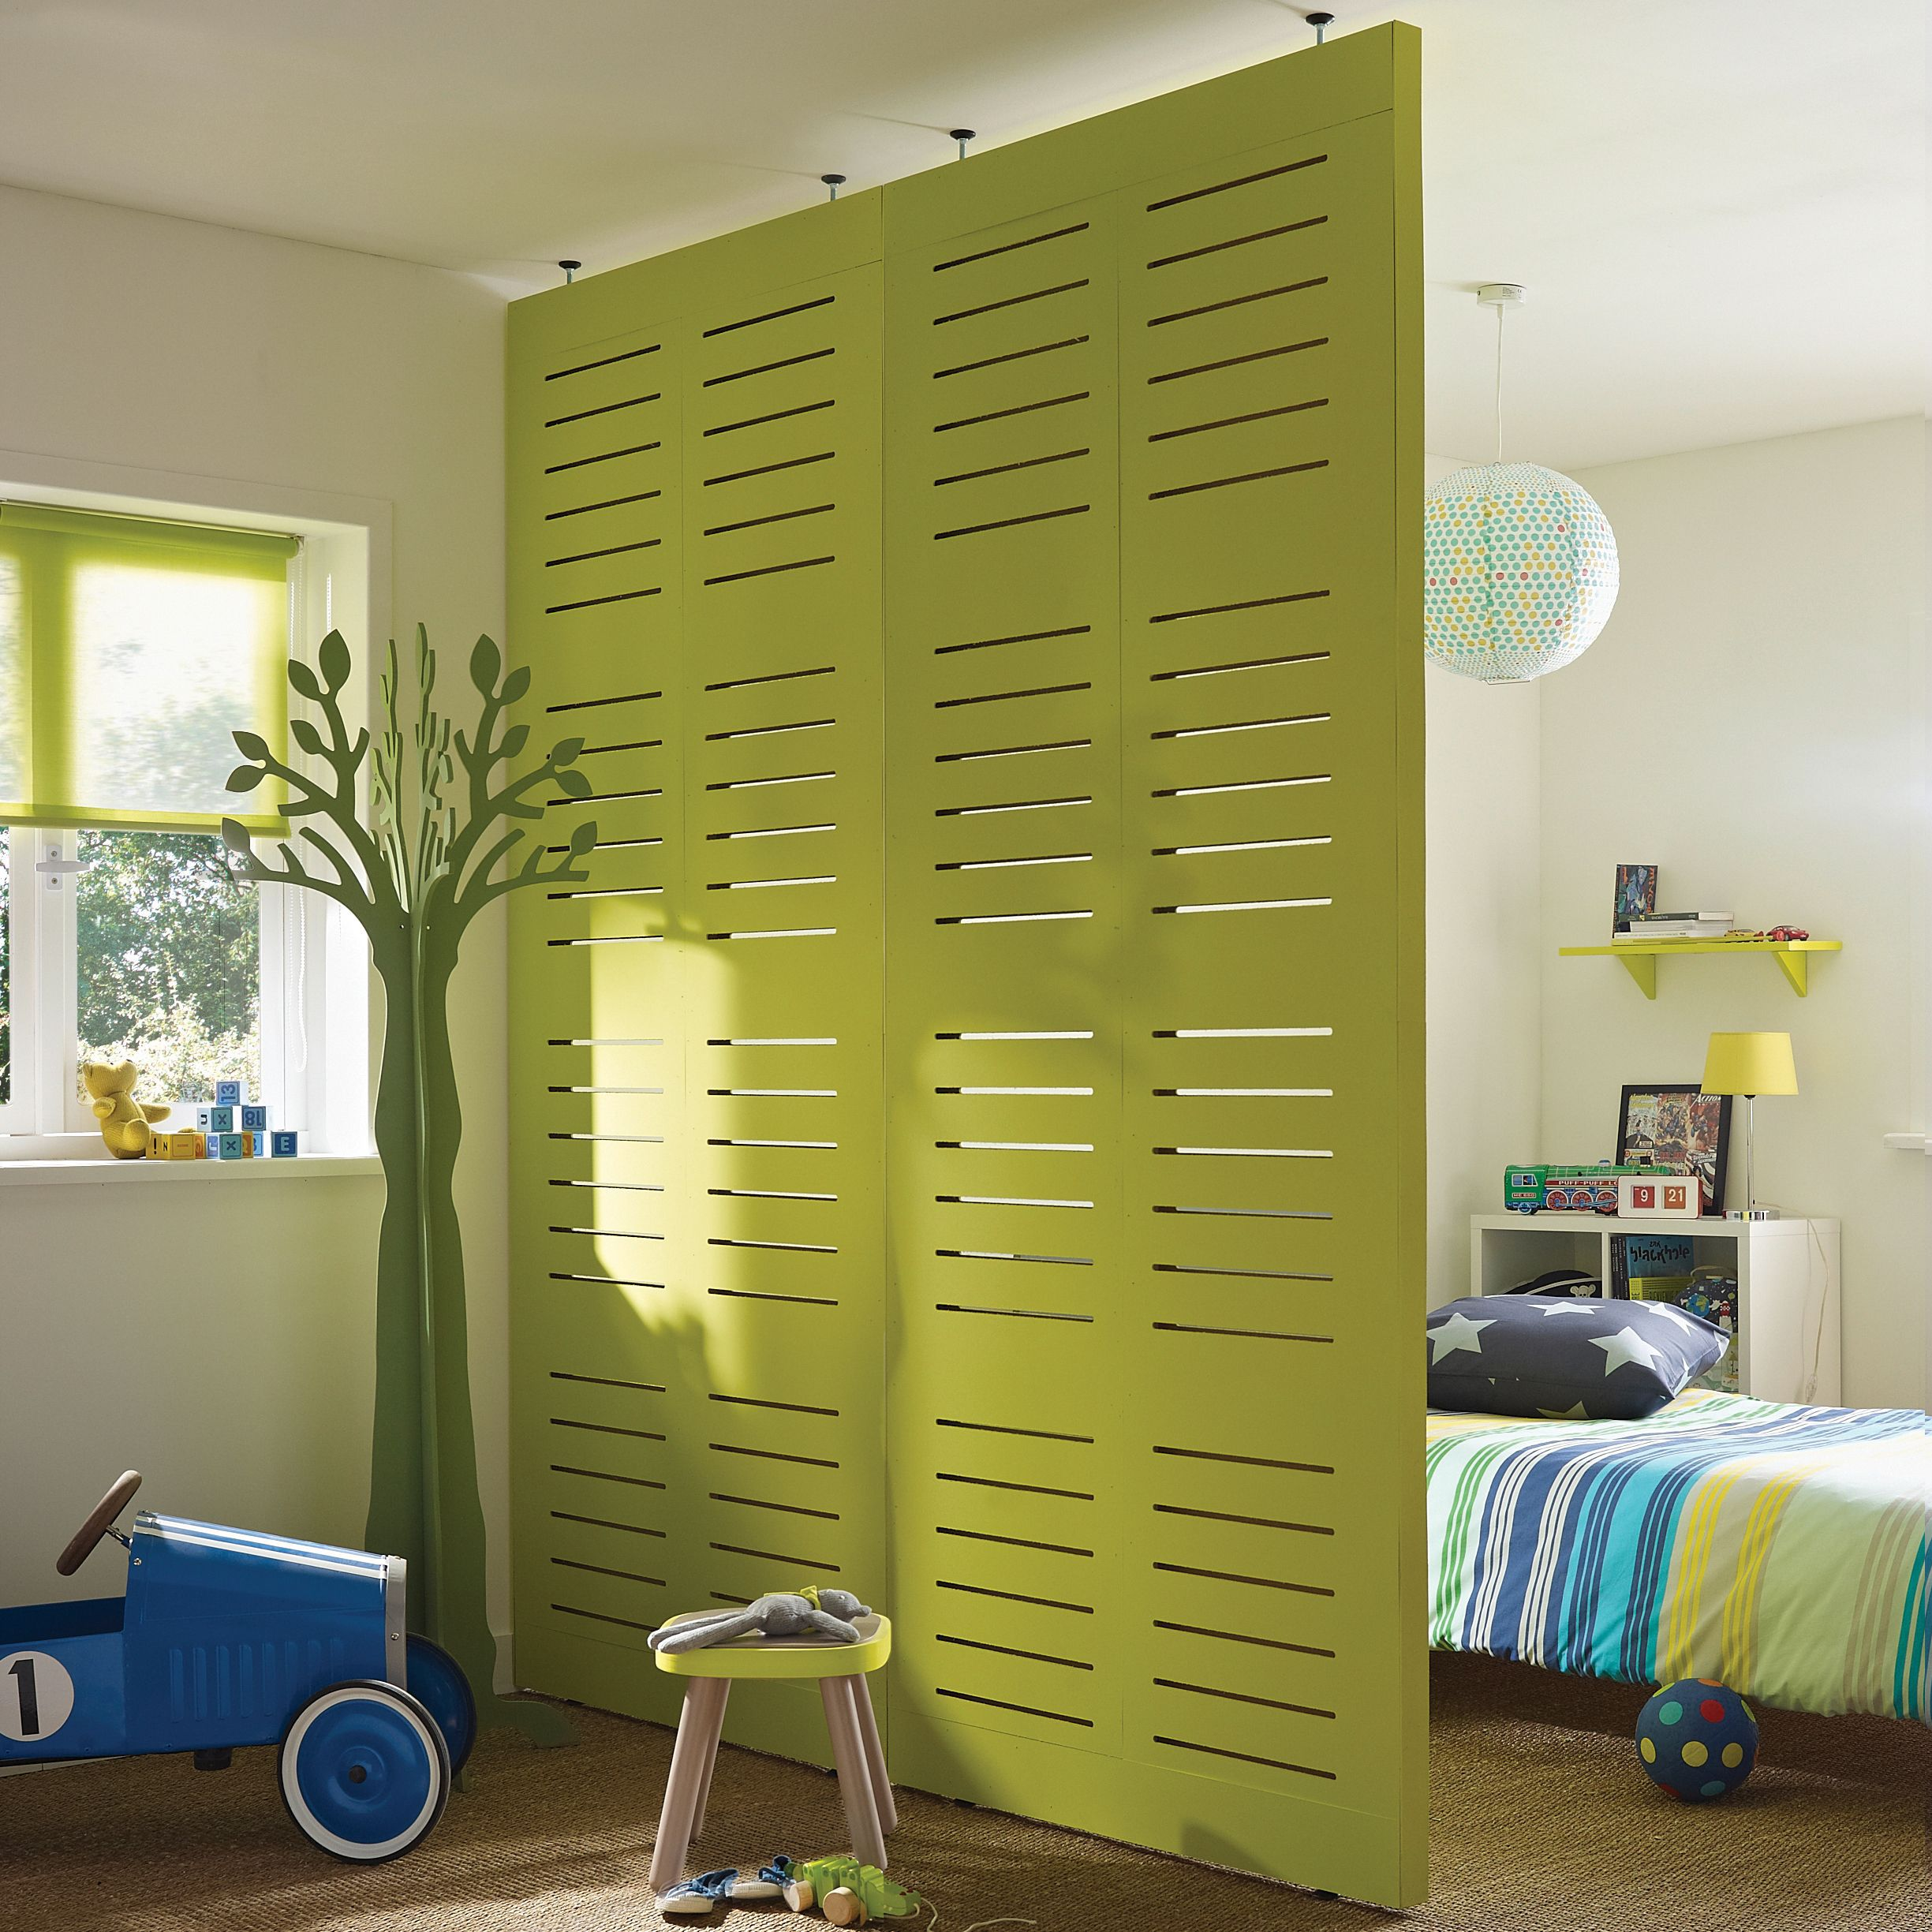 Karalis Room Divider | Departments | DIY at B&Q.